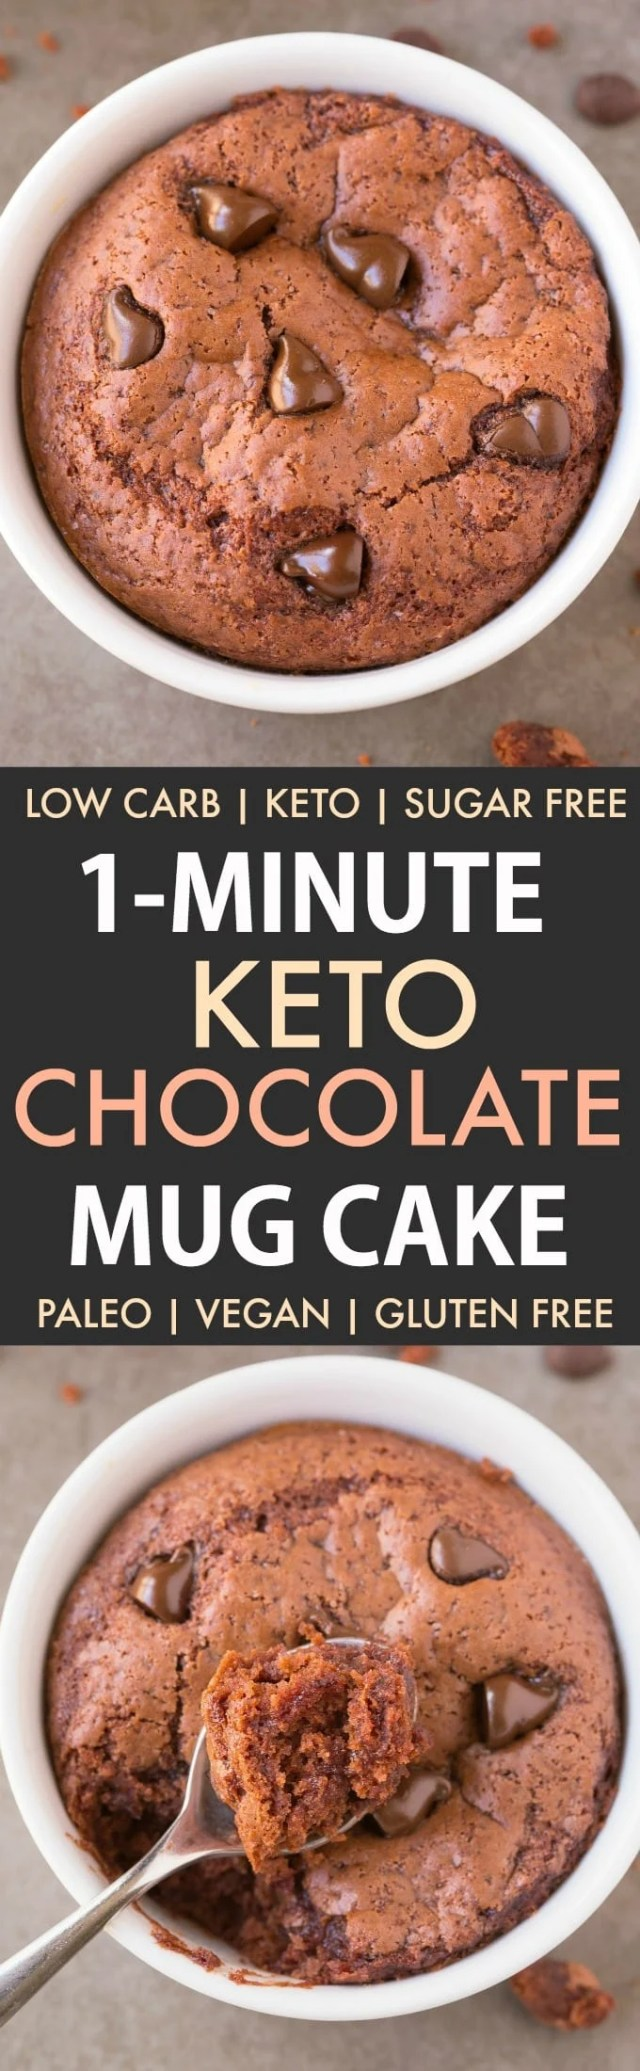 1-Minute Keto Chocolate Mug Cake in a collage